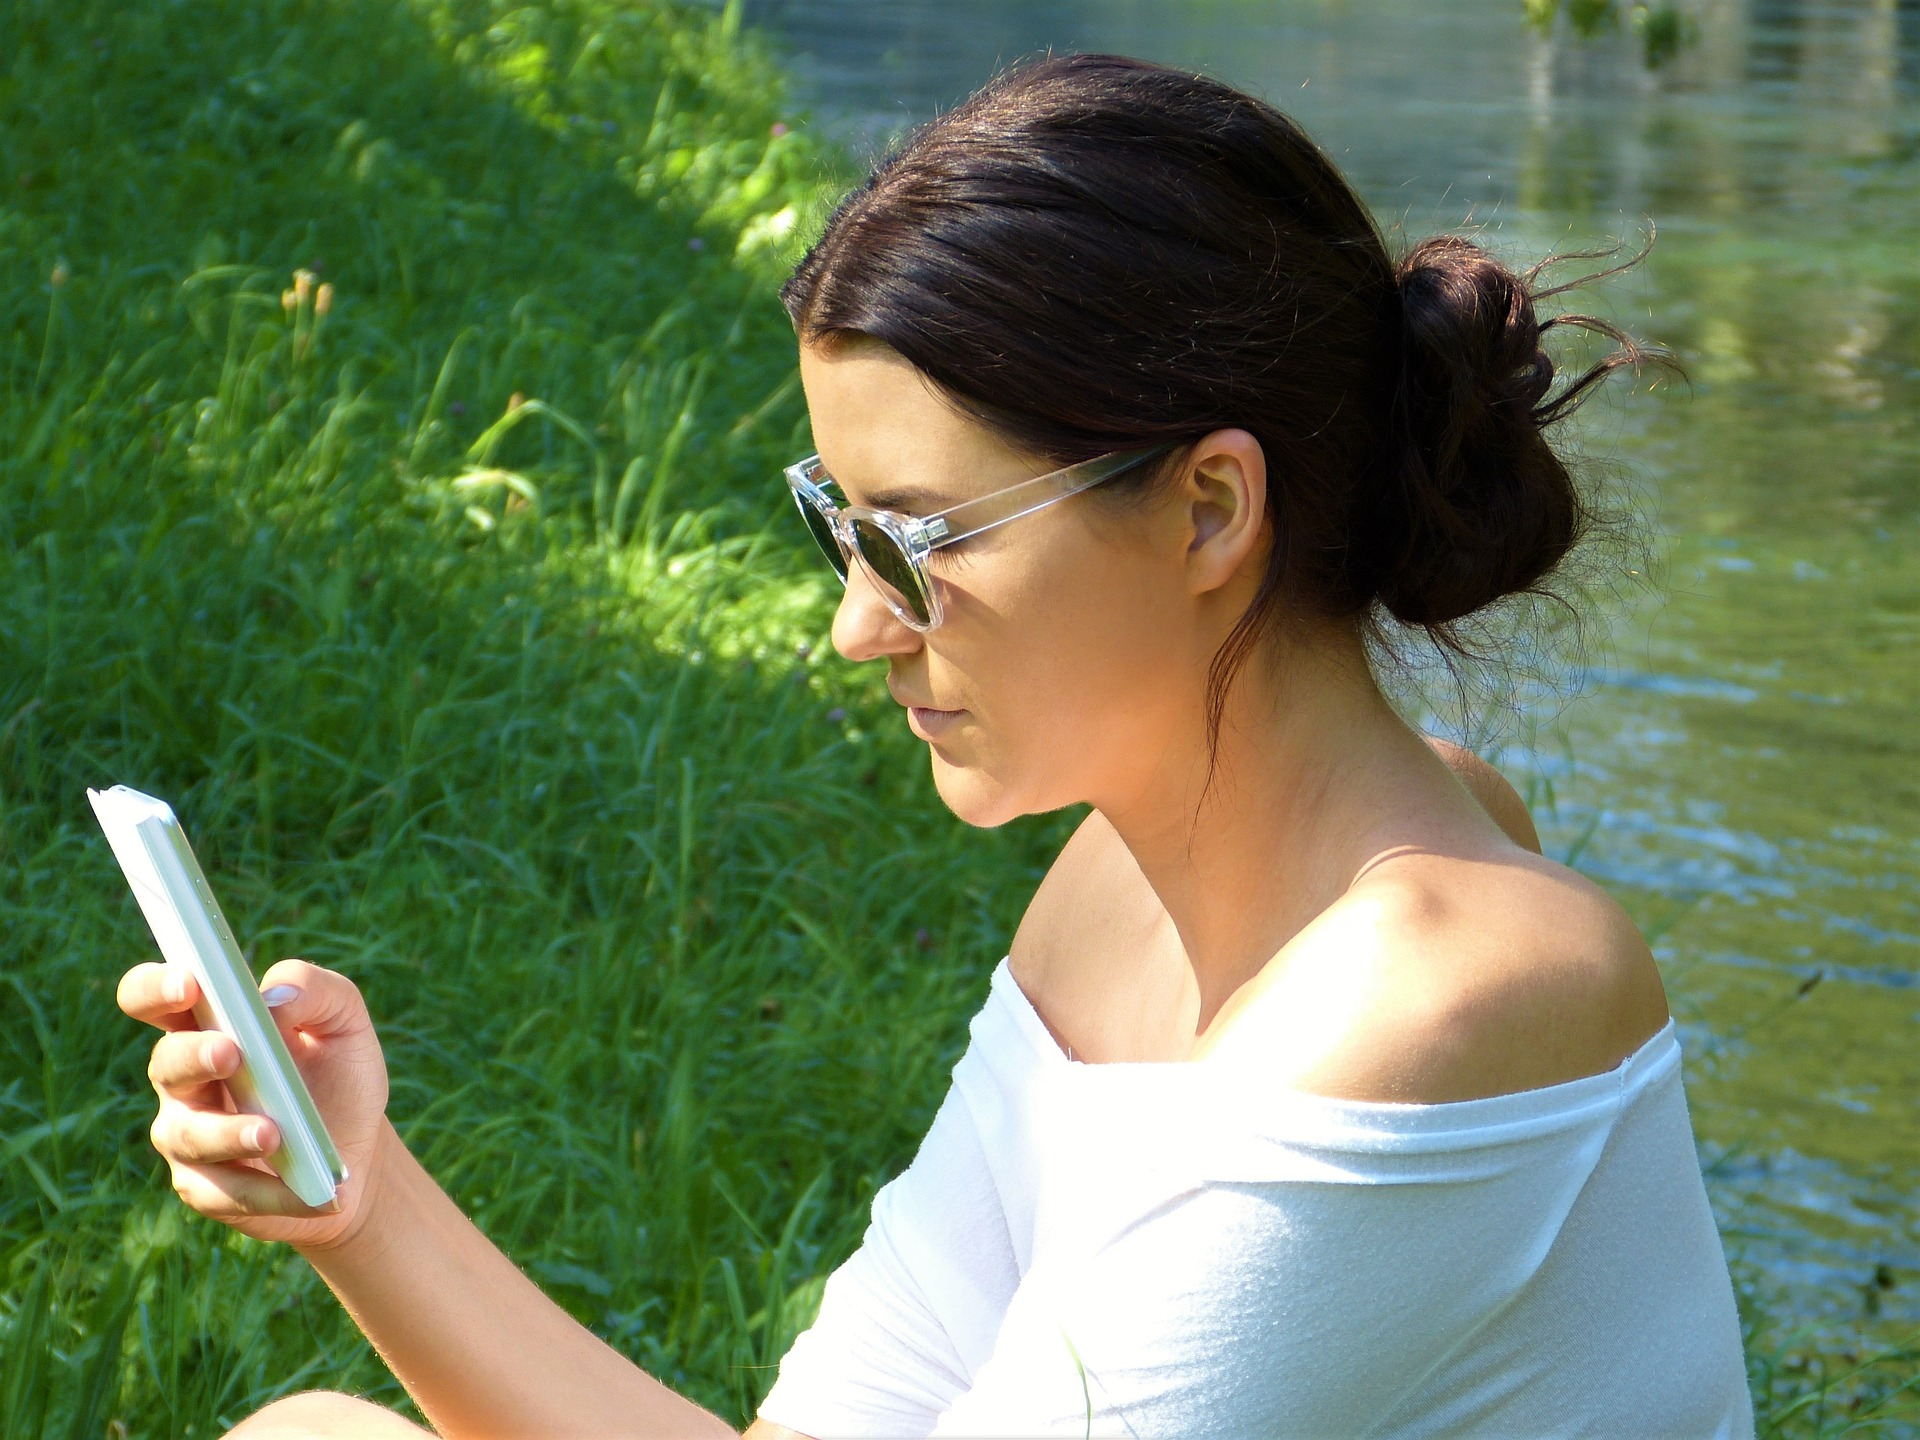 Woman with a smartphone in hands